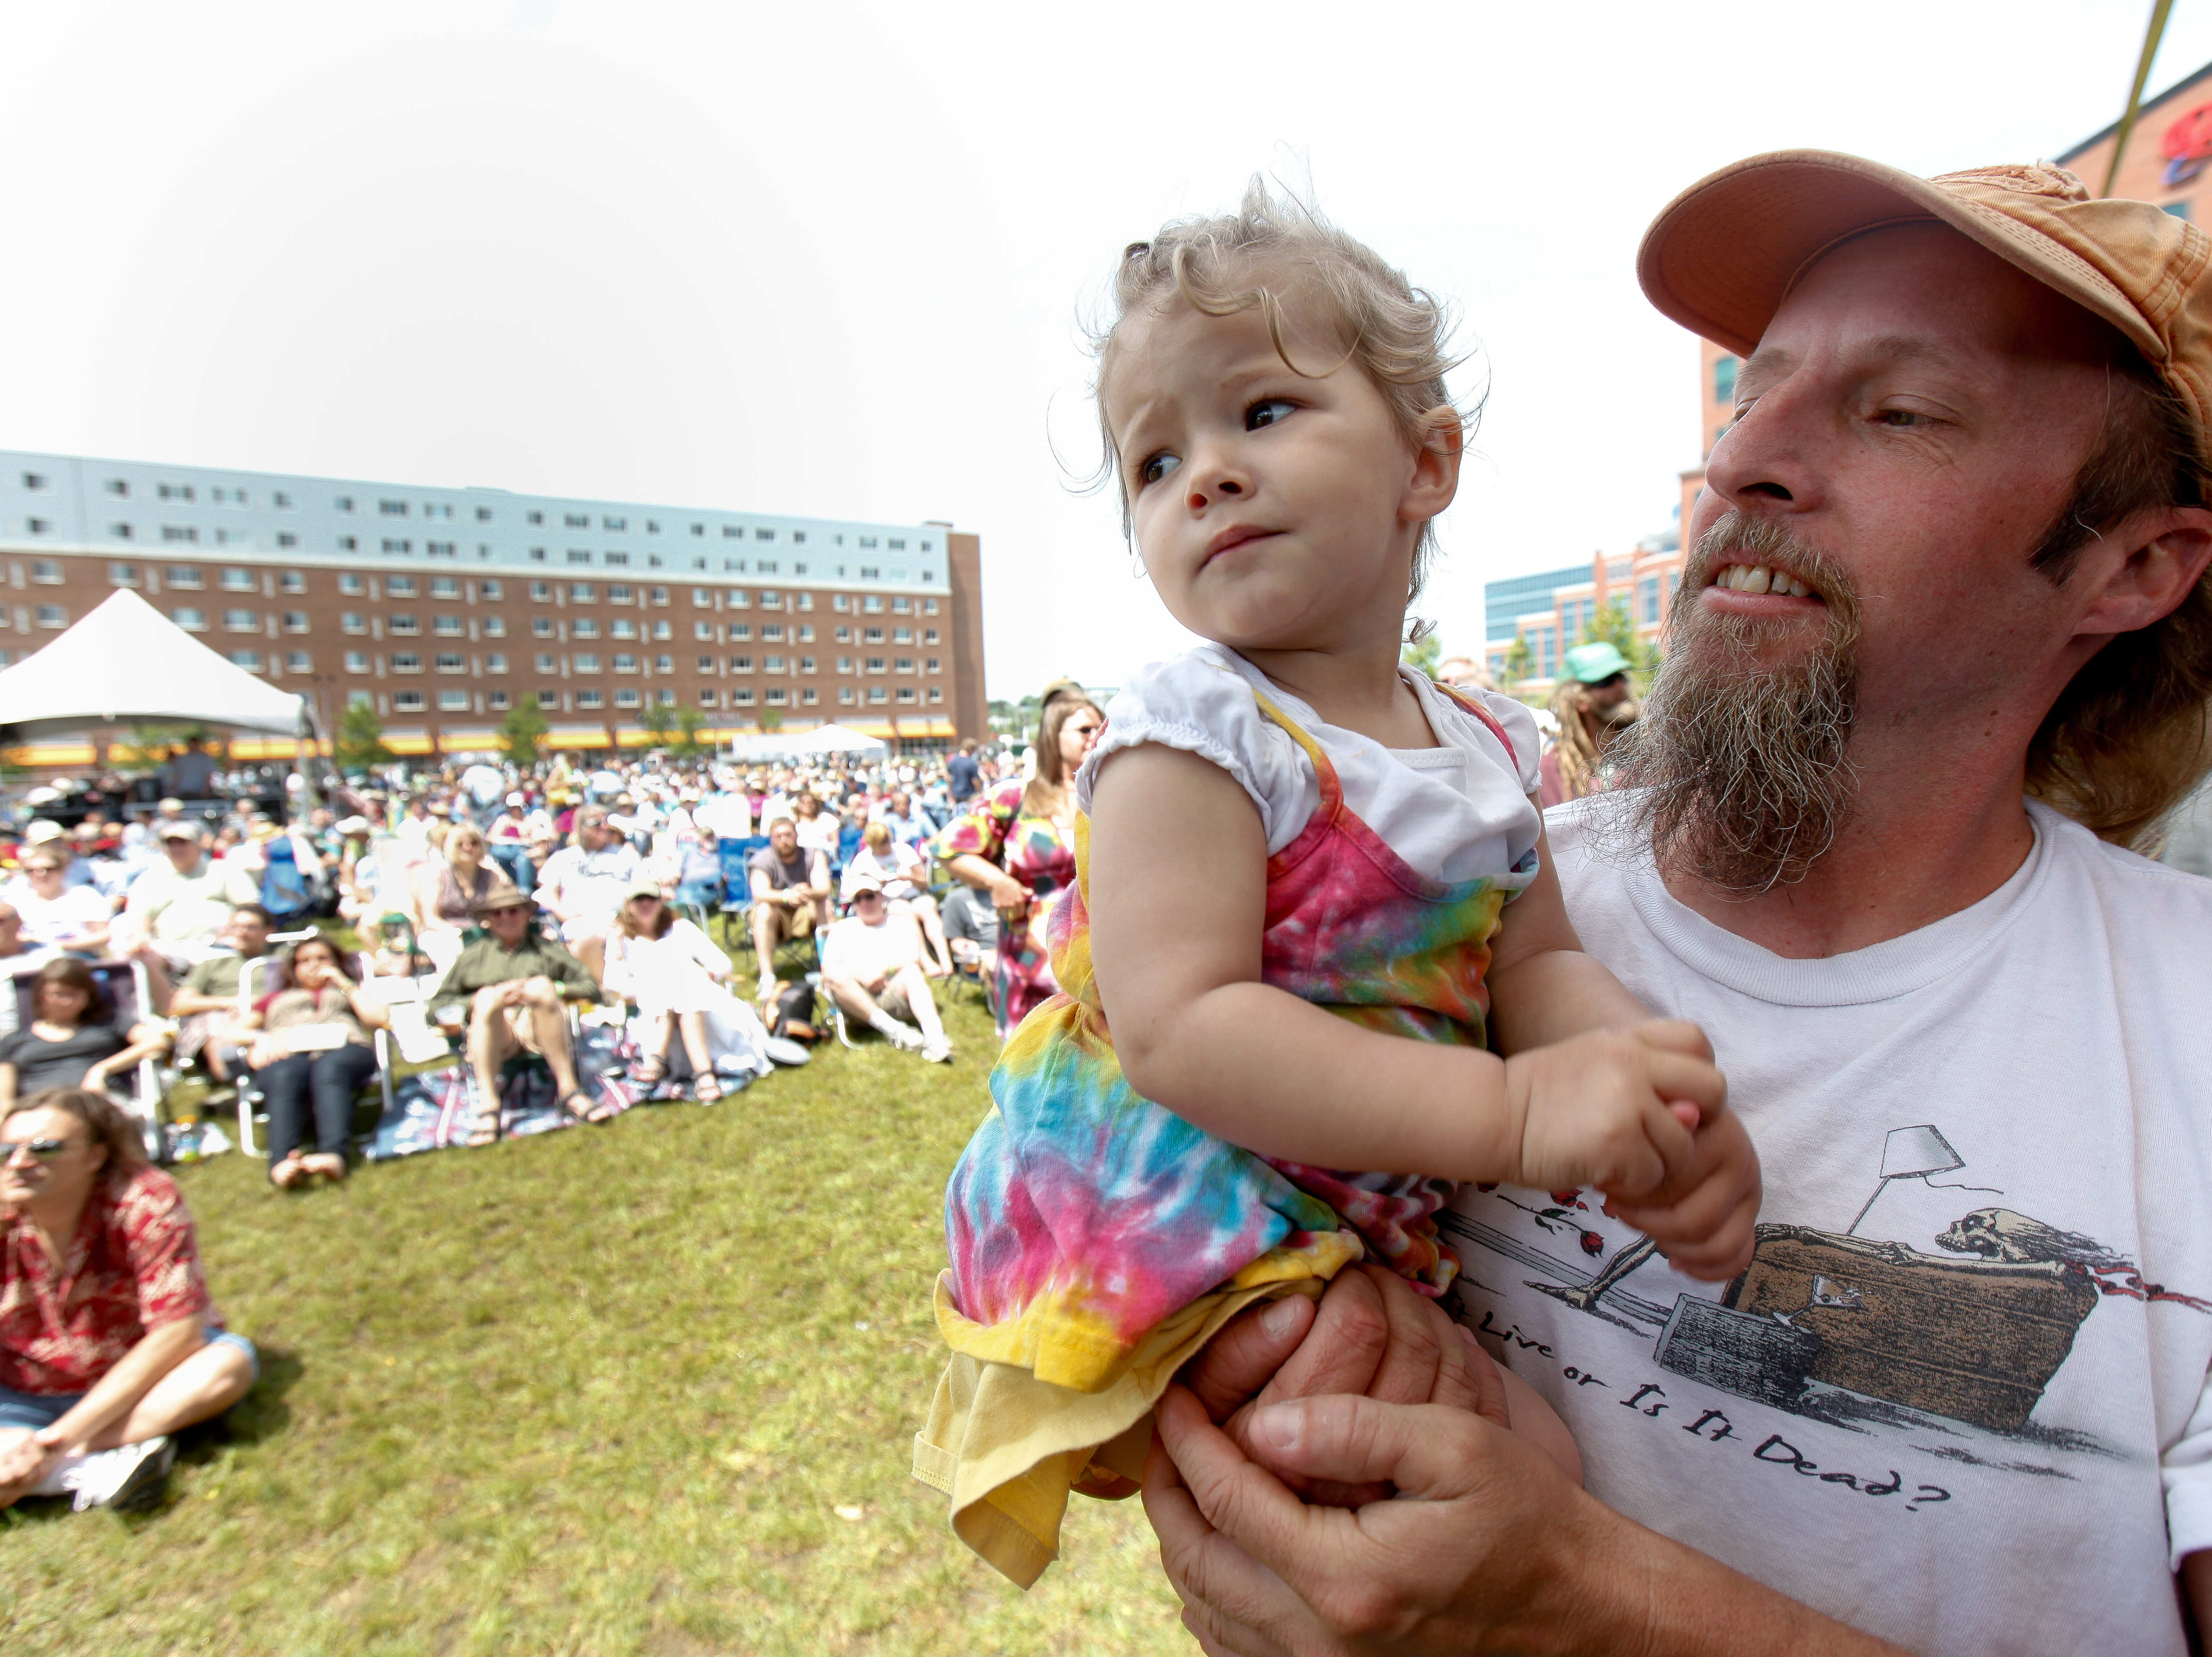 Todd Dedmon of Newark and his 19-month-old daughter Zoe enjoy the music of Jorma Kaukonen, founding member of Jefferson Airplane and member of Hot Tuna, at Bromberg's Big Noise in 2010.